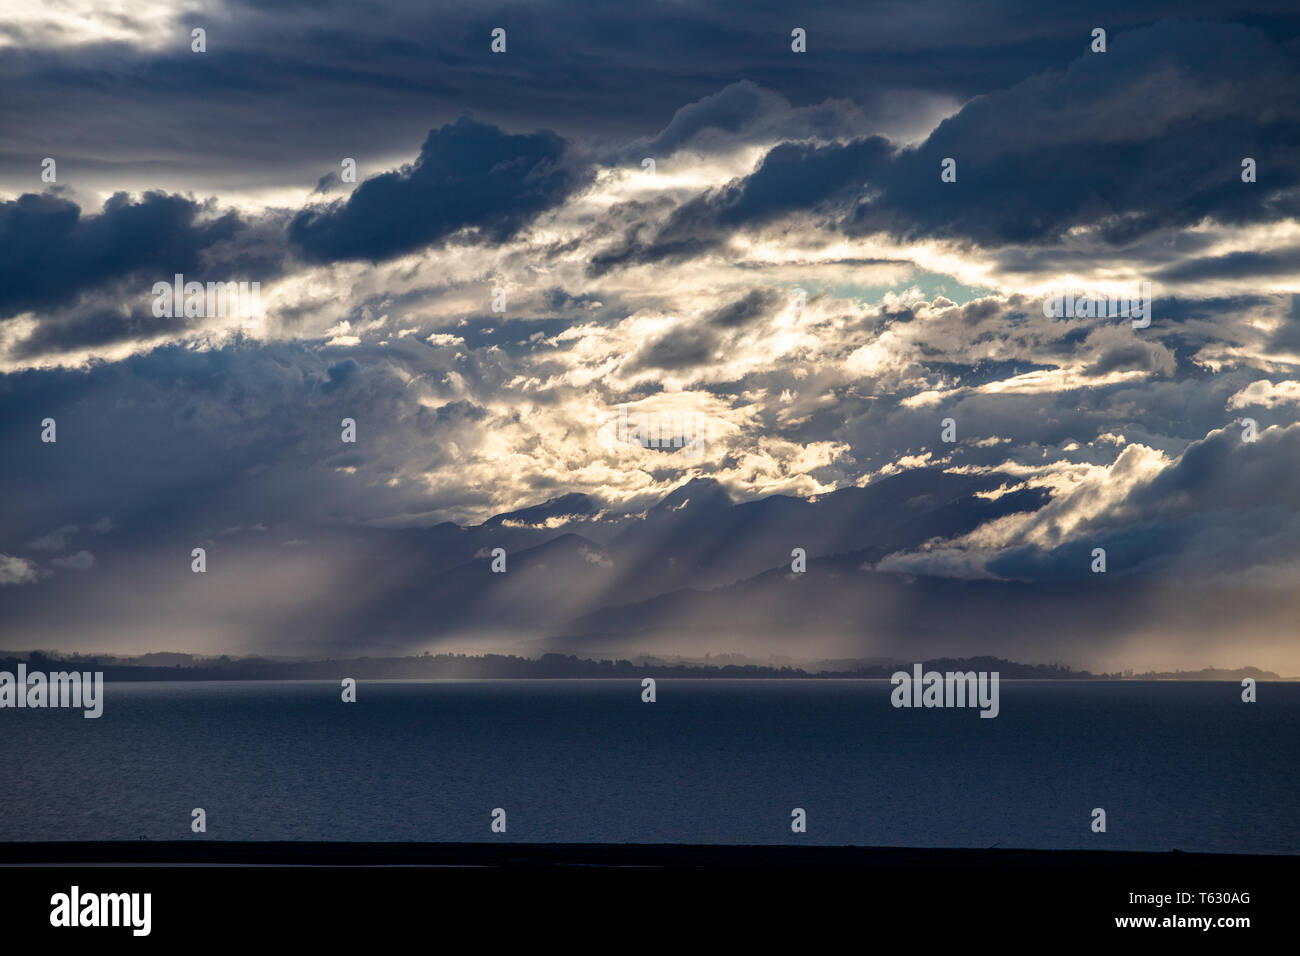 dramatic cloud formations over Tasman Bay, New Zealand Stock Photo